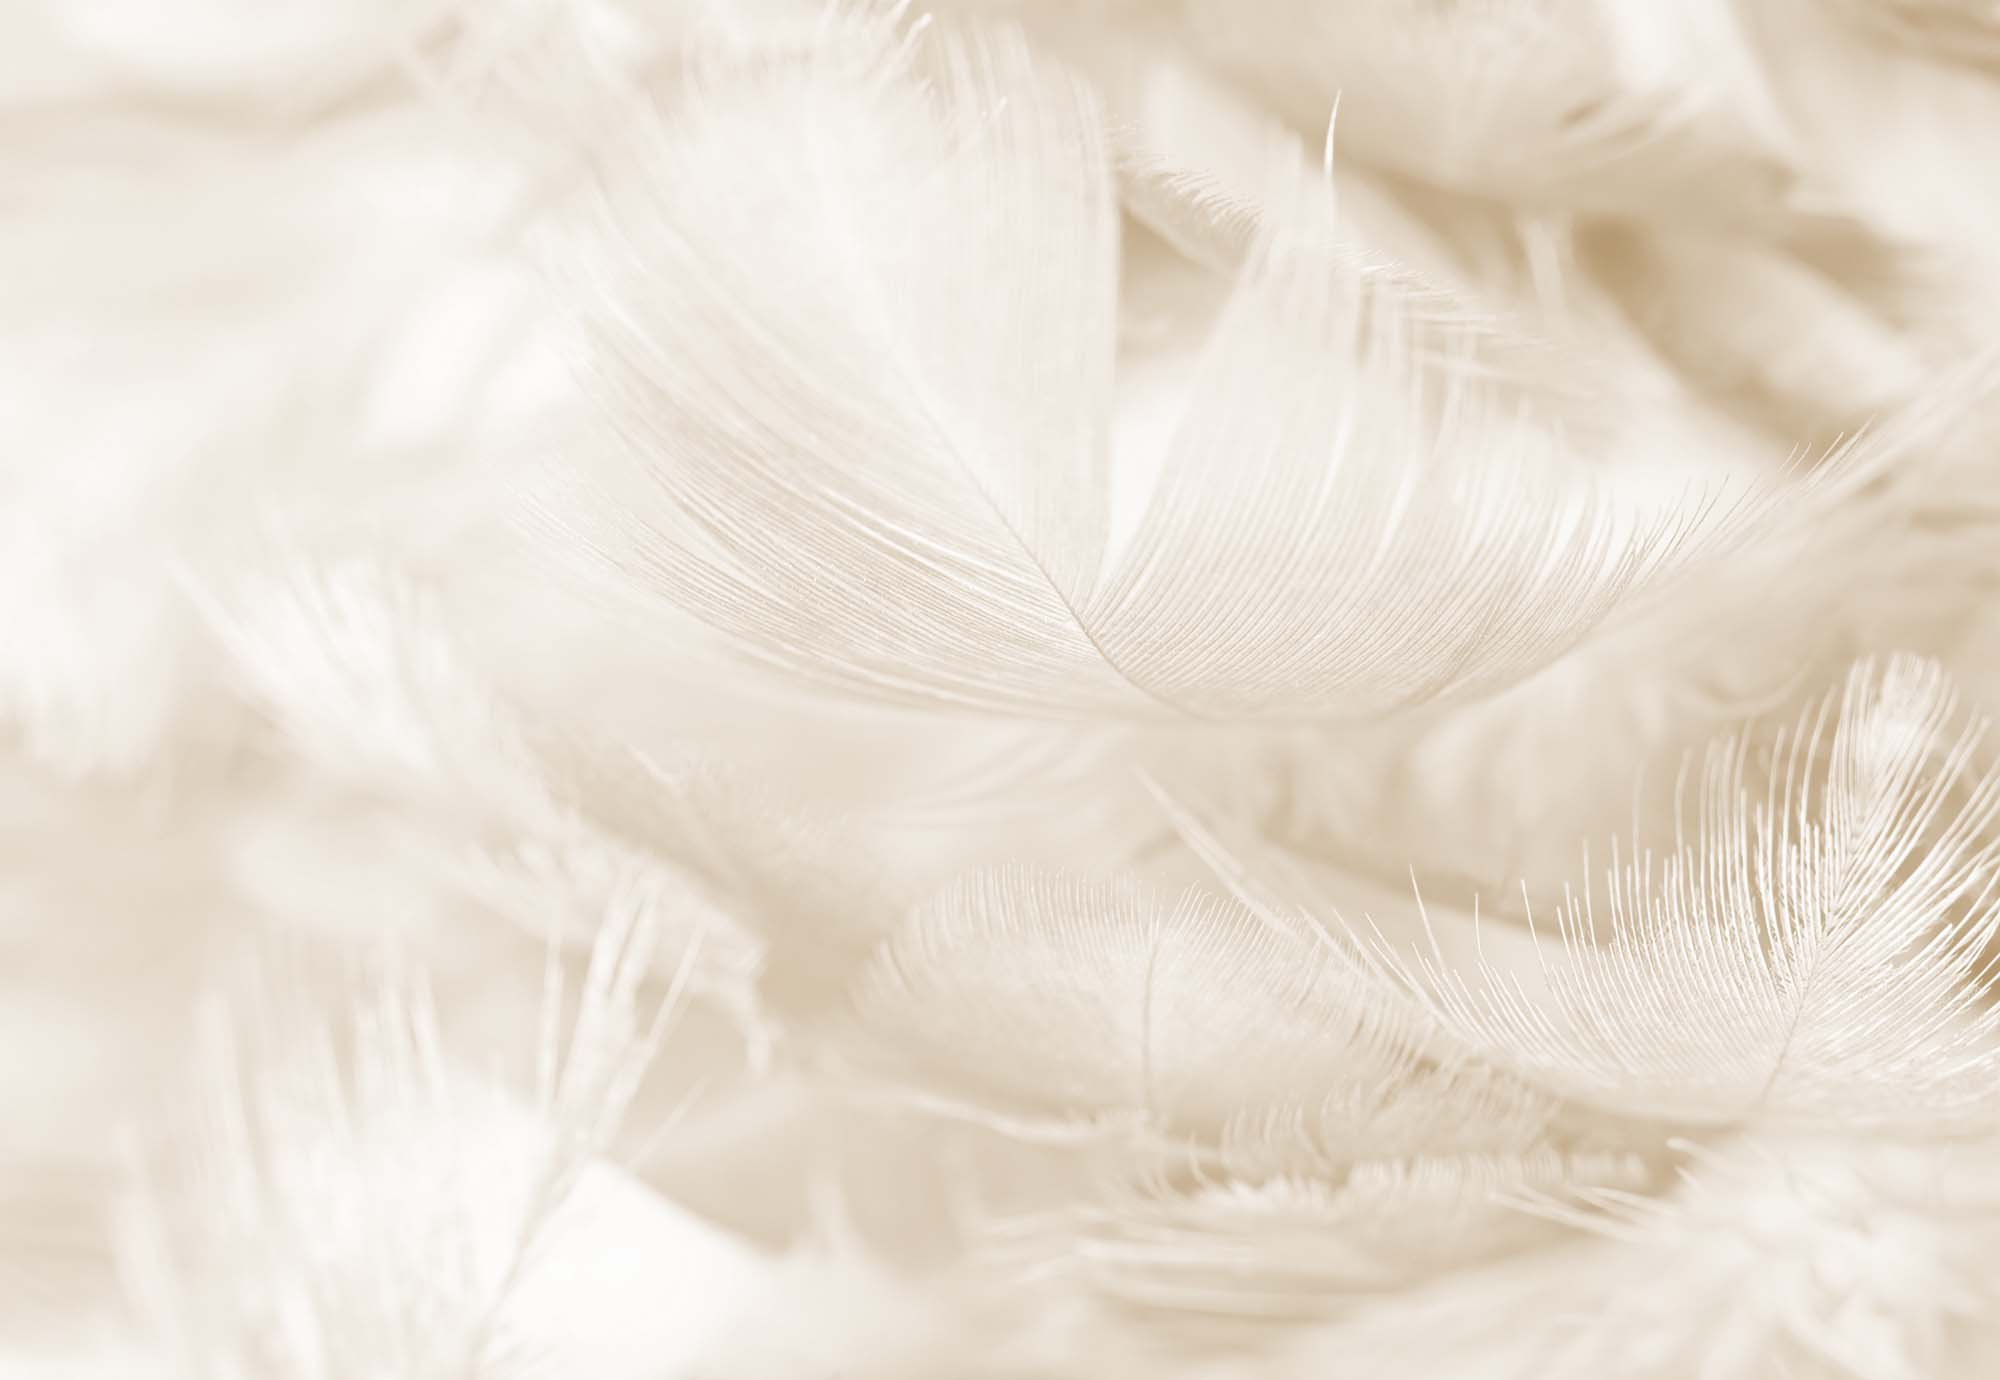 Fotobehang Feathers in Sepia